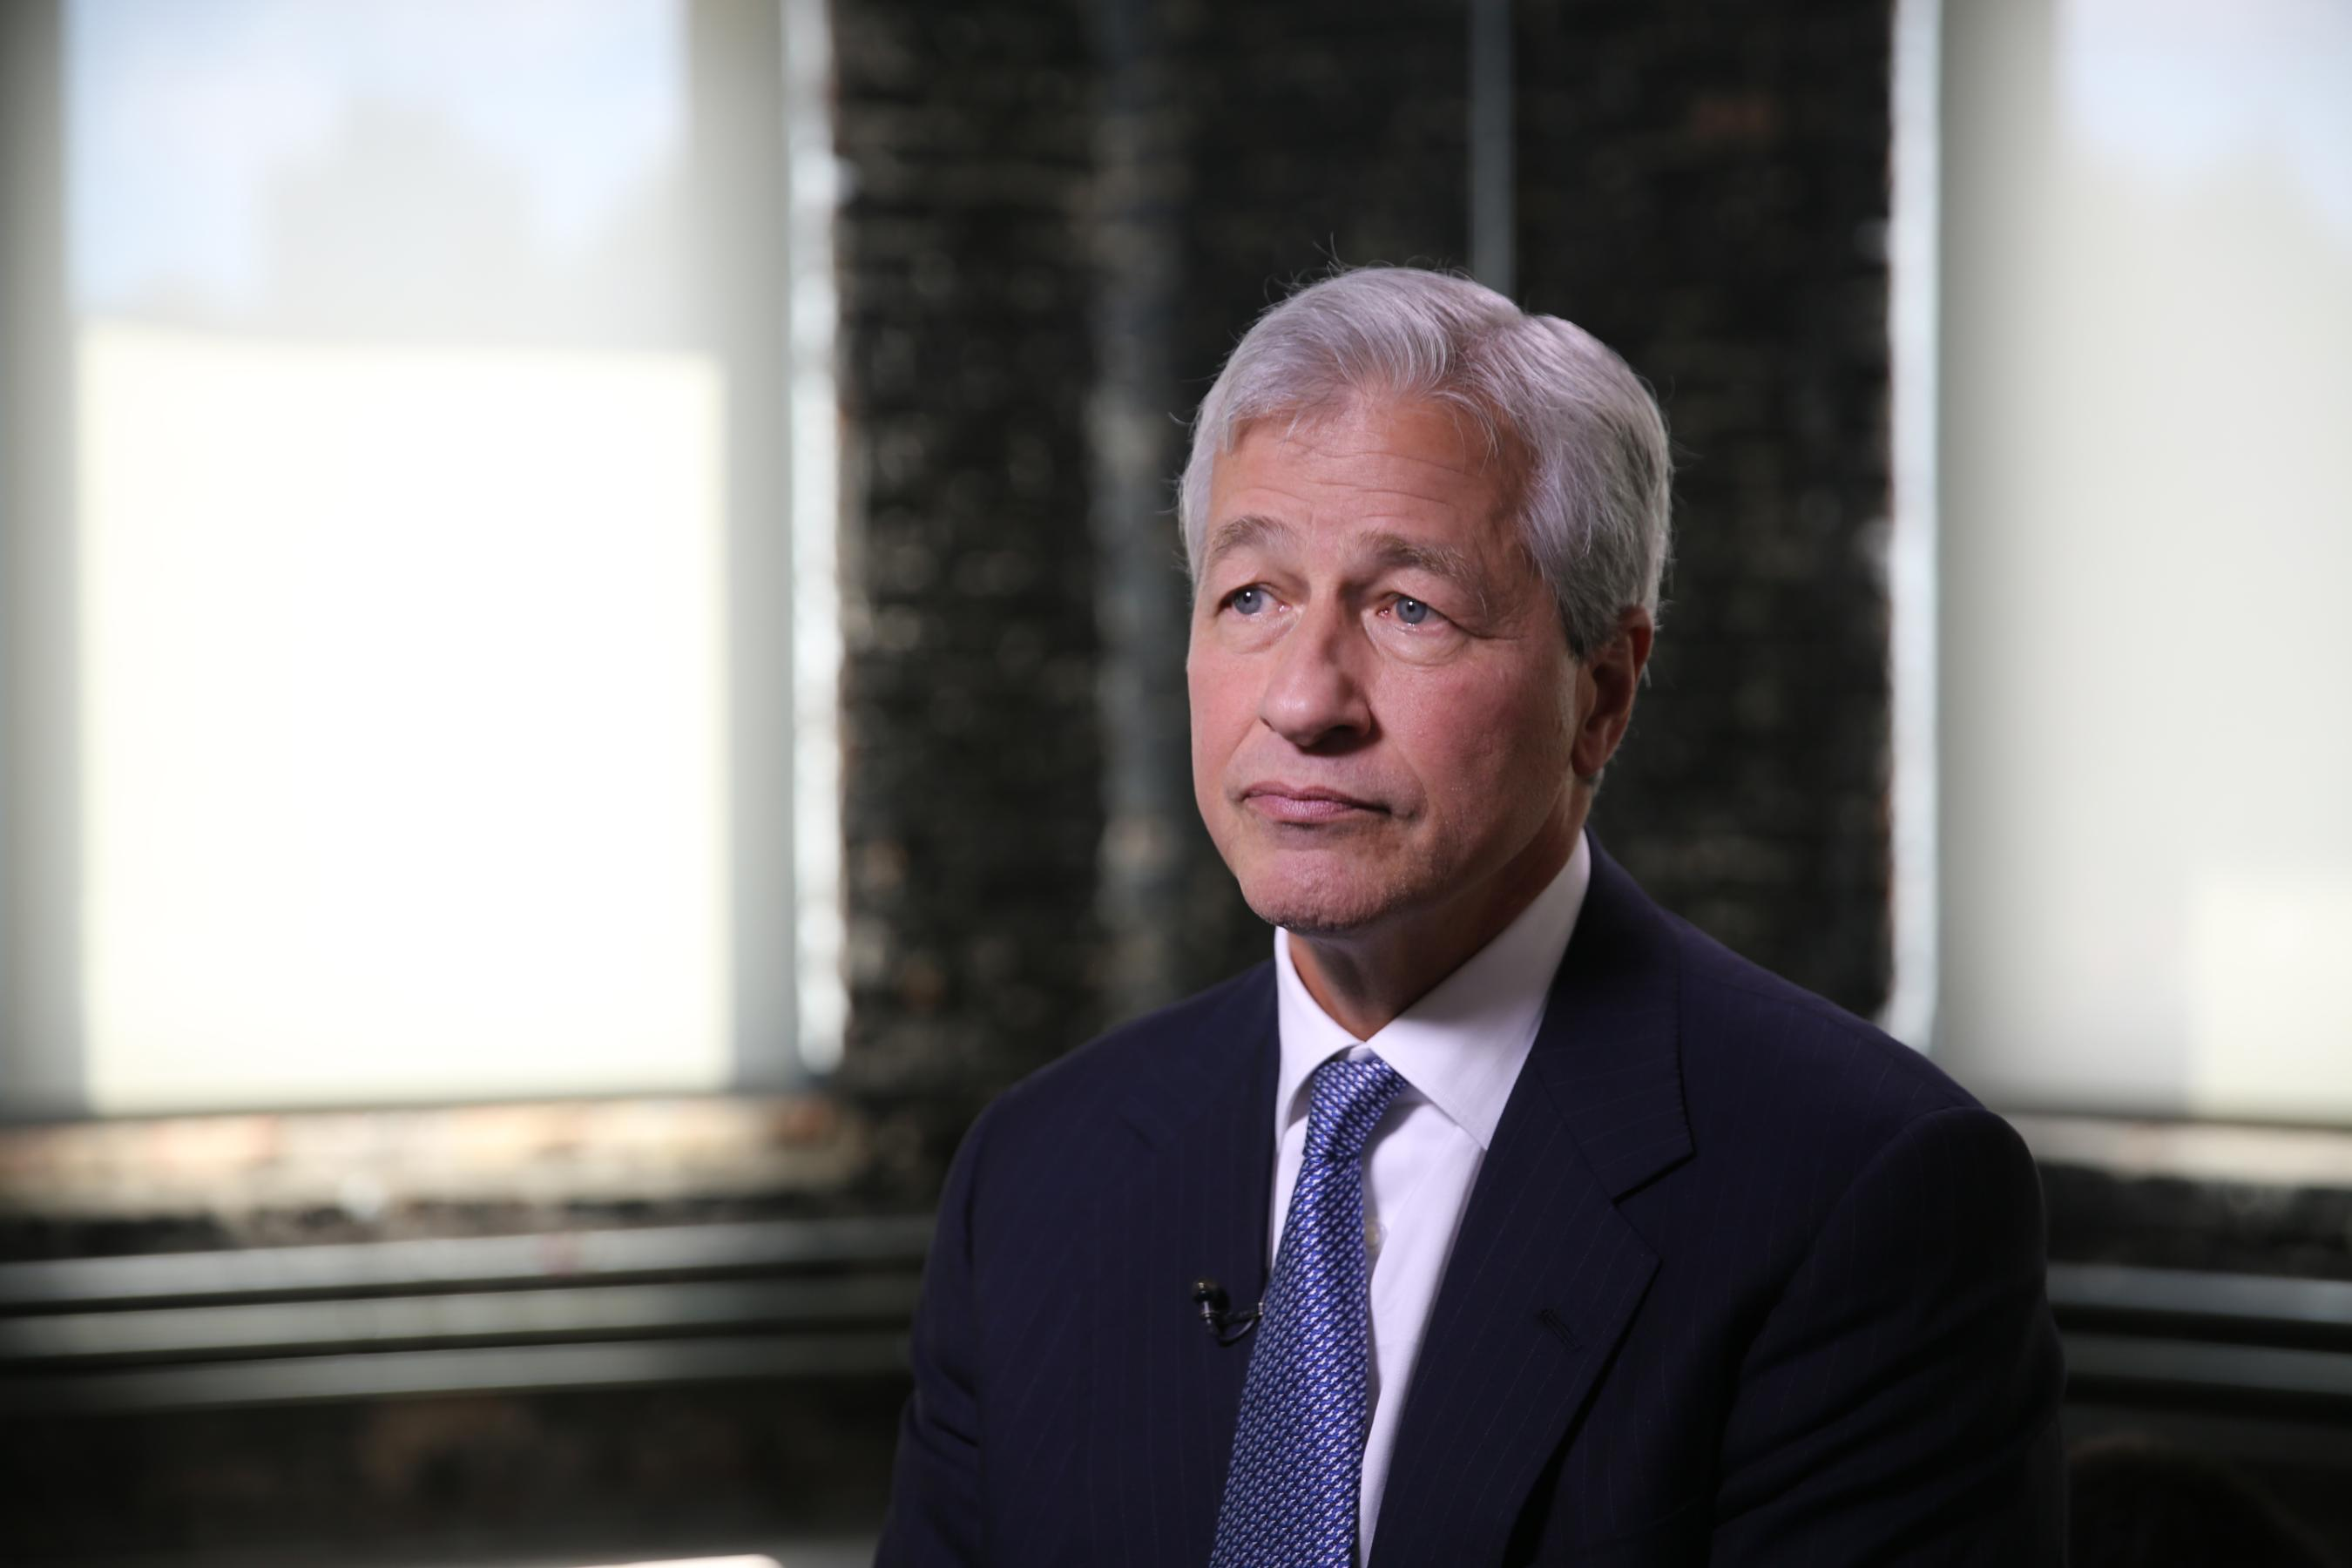 JPMorgan Chase wants to hire more ex felons - CNN Video